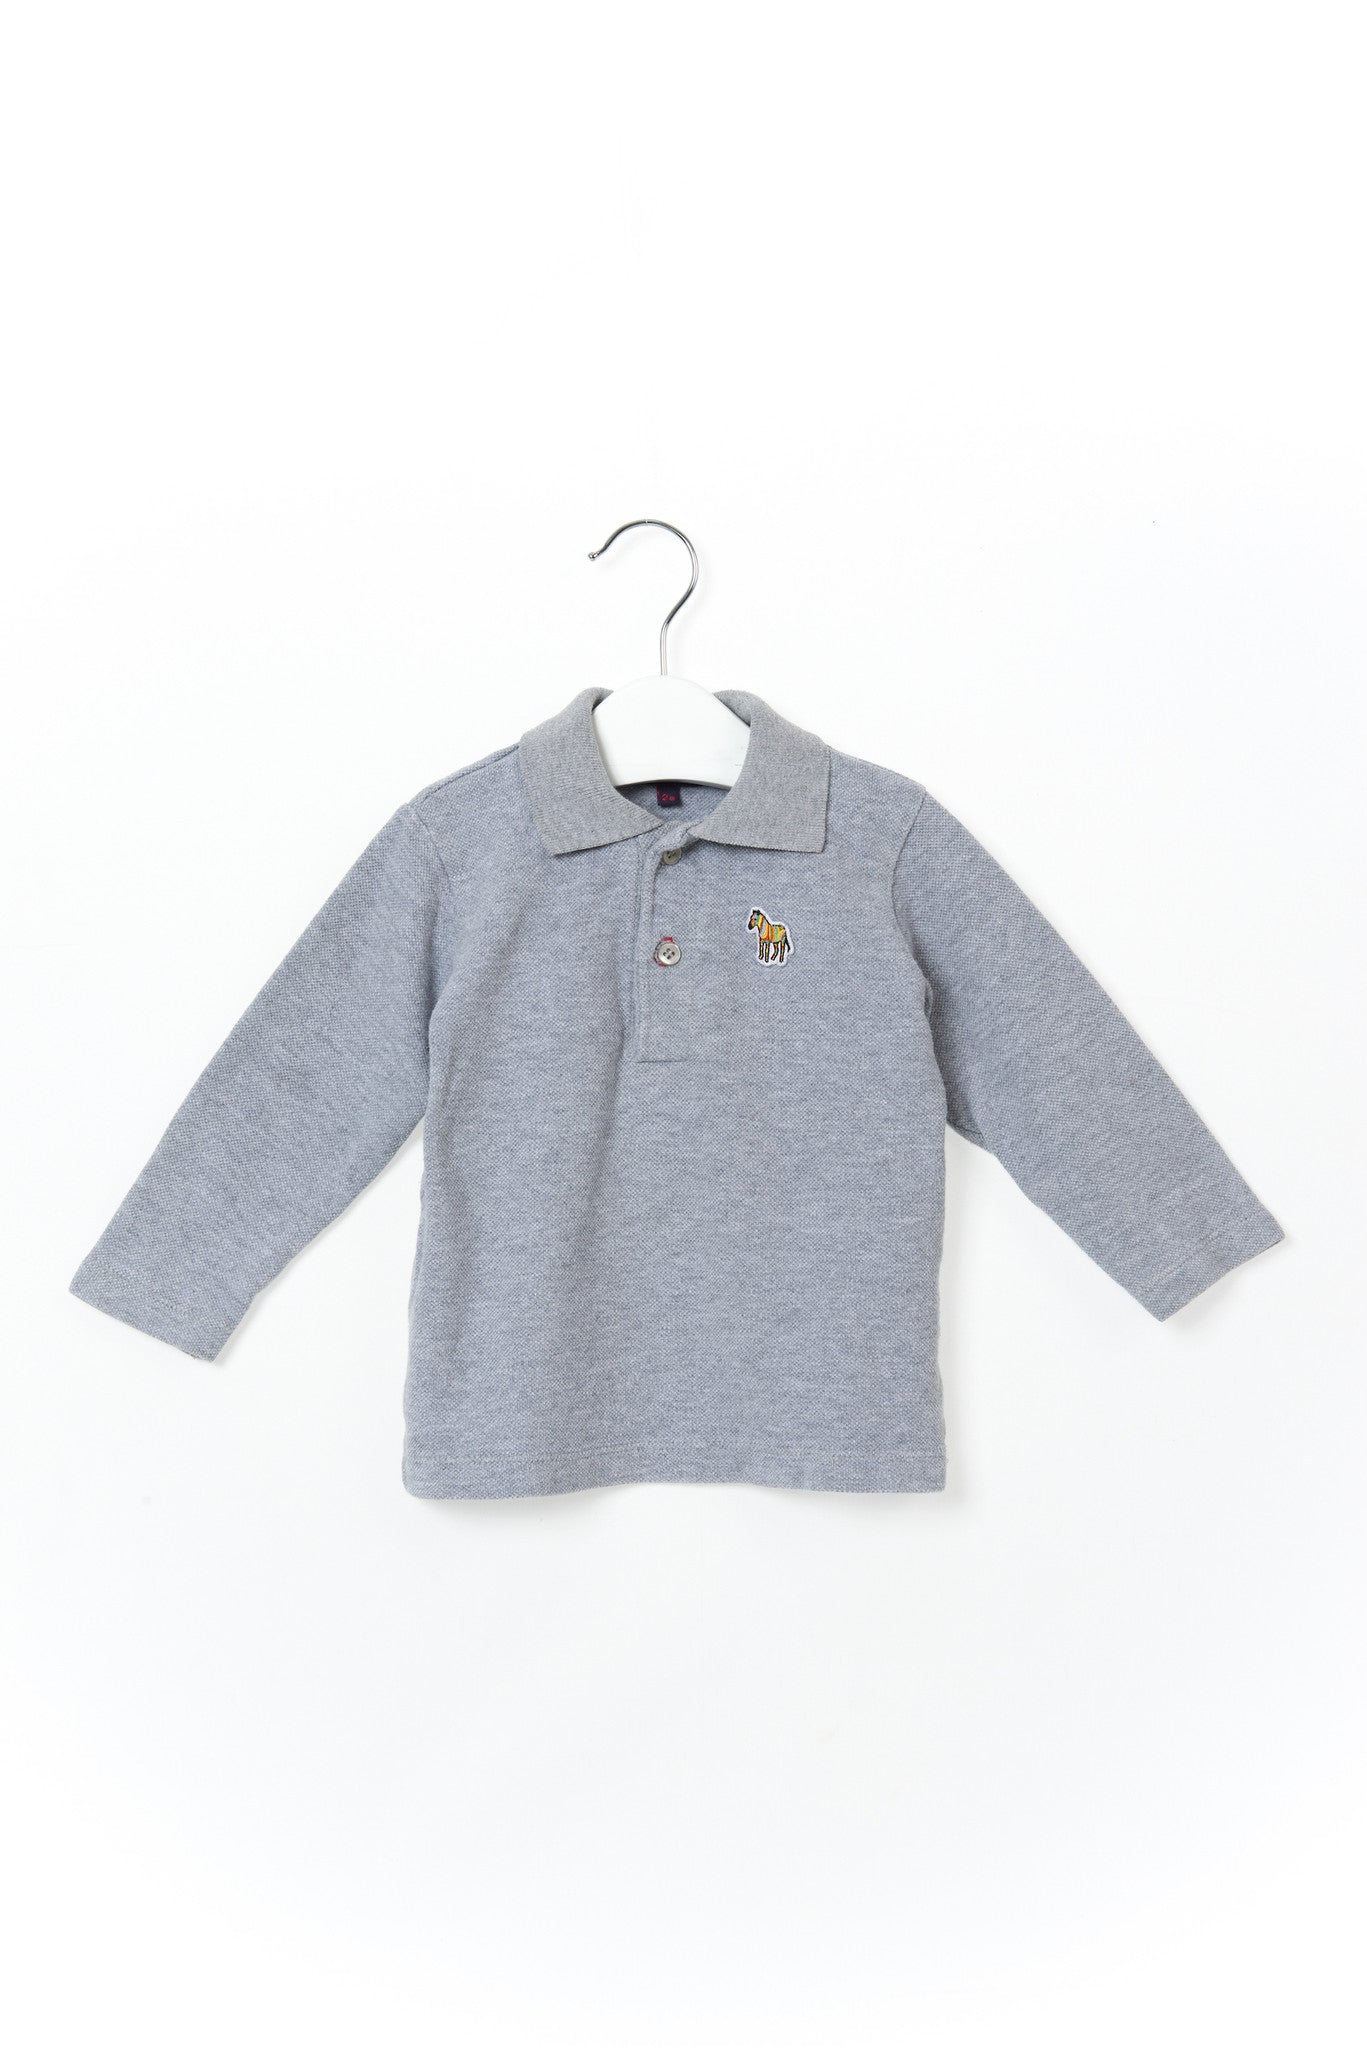 10001285 Paul Smith Kids~Polo 2T at Retykle